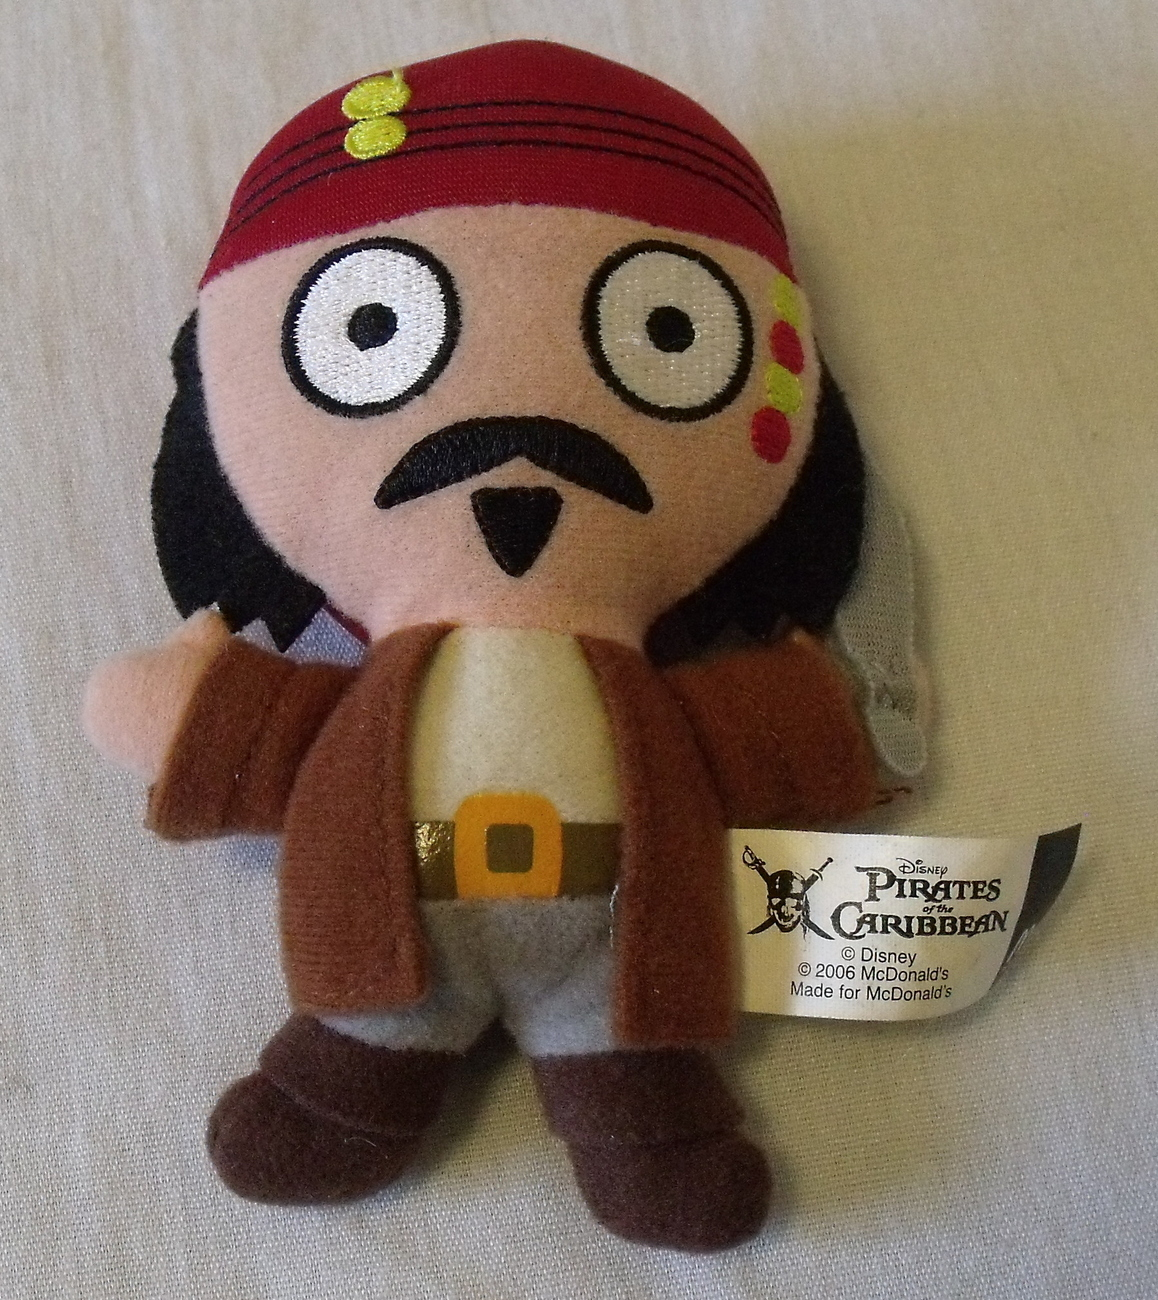 McDonalds Happy Meal Toy Jack Sparrow Pirates of the Caribbean Cloth Figure